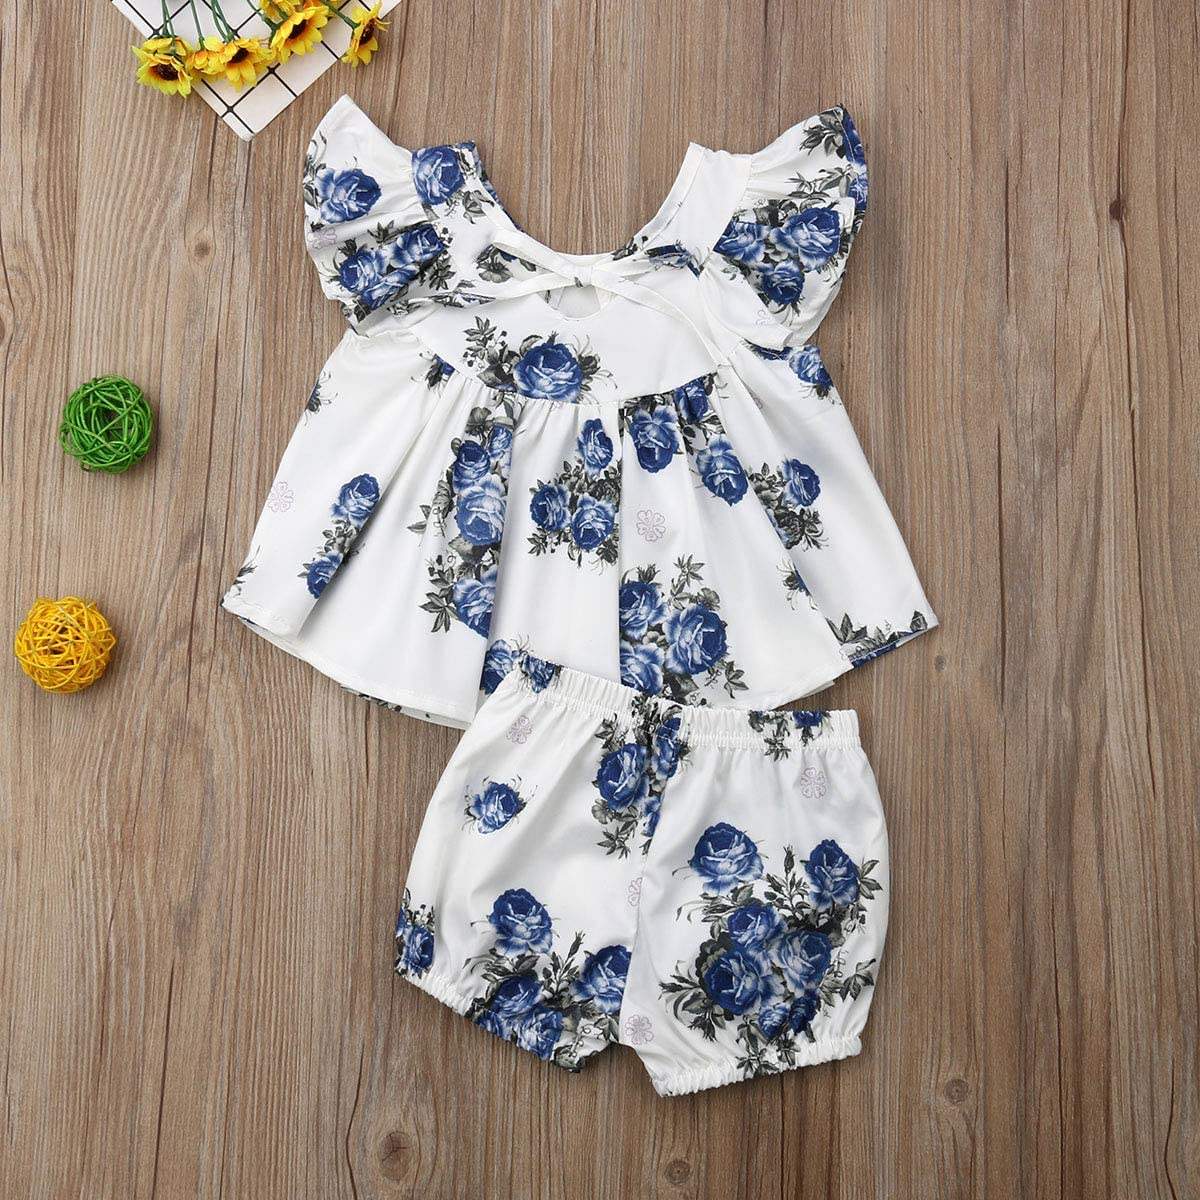 Infant Bottom Newborn Sets for 0-3years 2Pcs Toddler Girl Floral Ruffle Tutu Sleeveless Baby Top